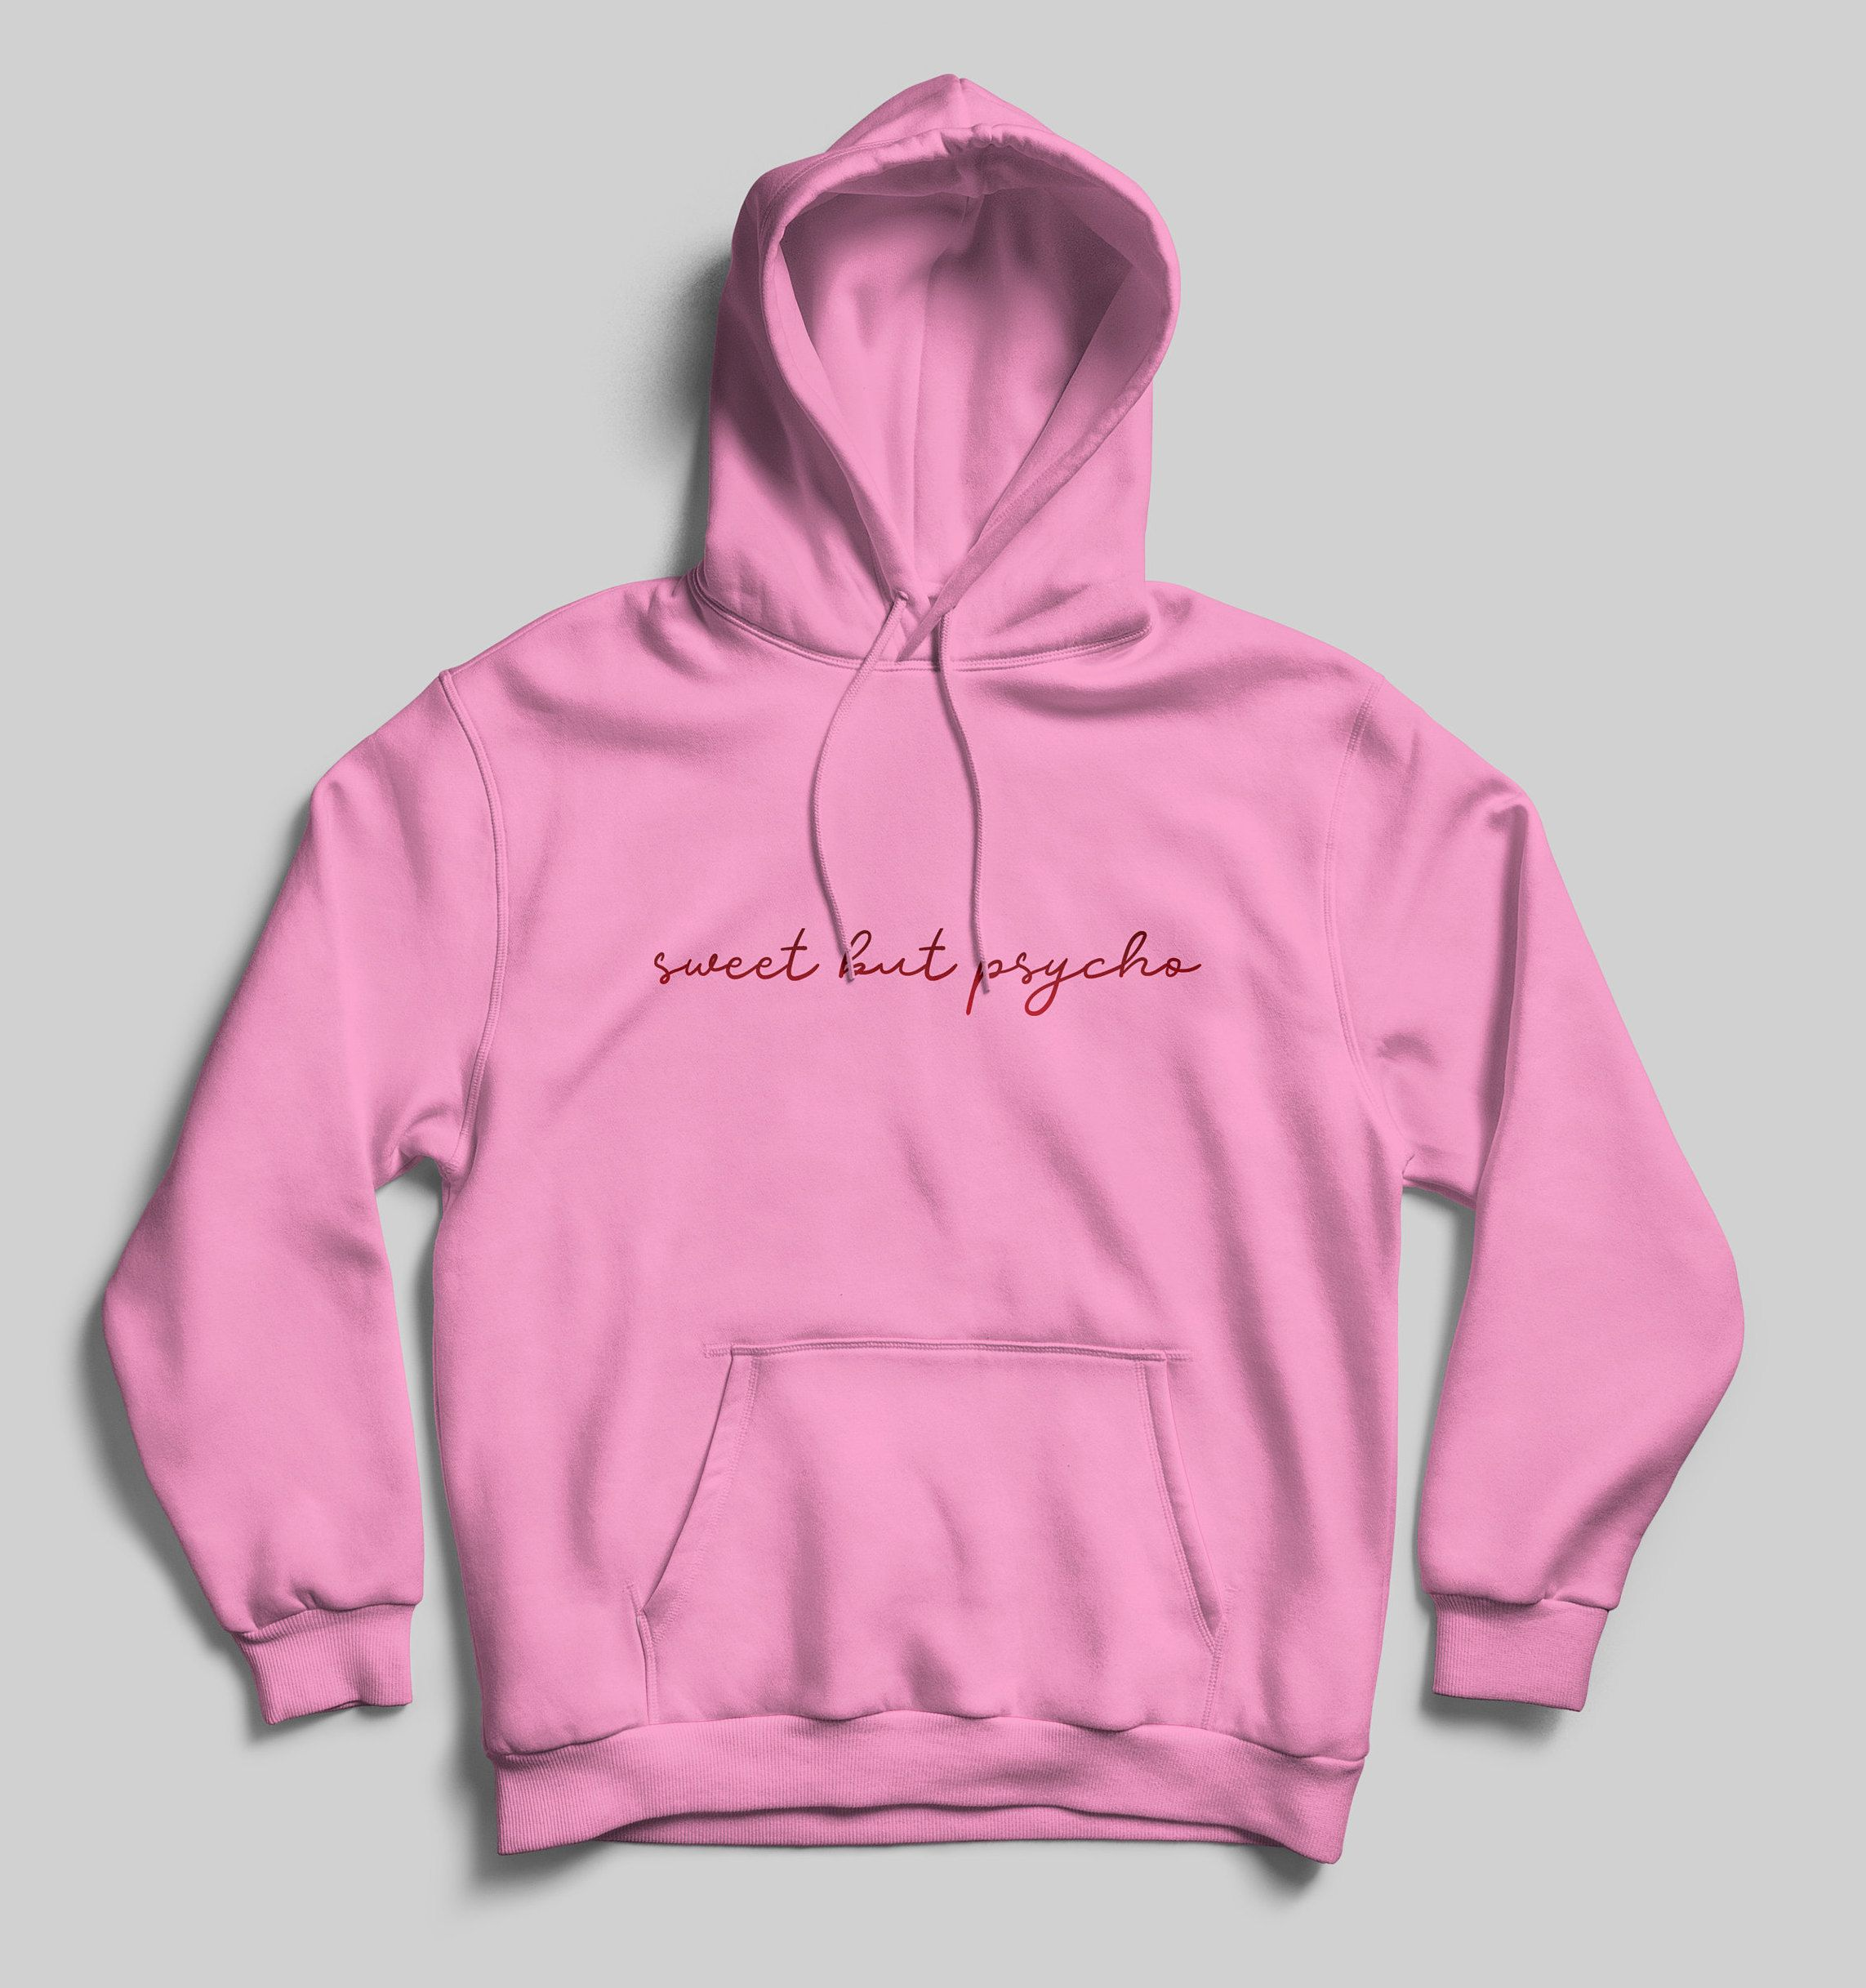 Women Hoodie Comfy Soft Sweatshirt Sweet But Psycho Gift For Girlfriend Birthday Gift Hoodies Womens Mom Sweatshirt Custom Hoodies